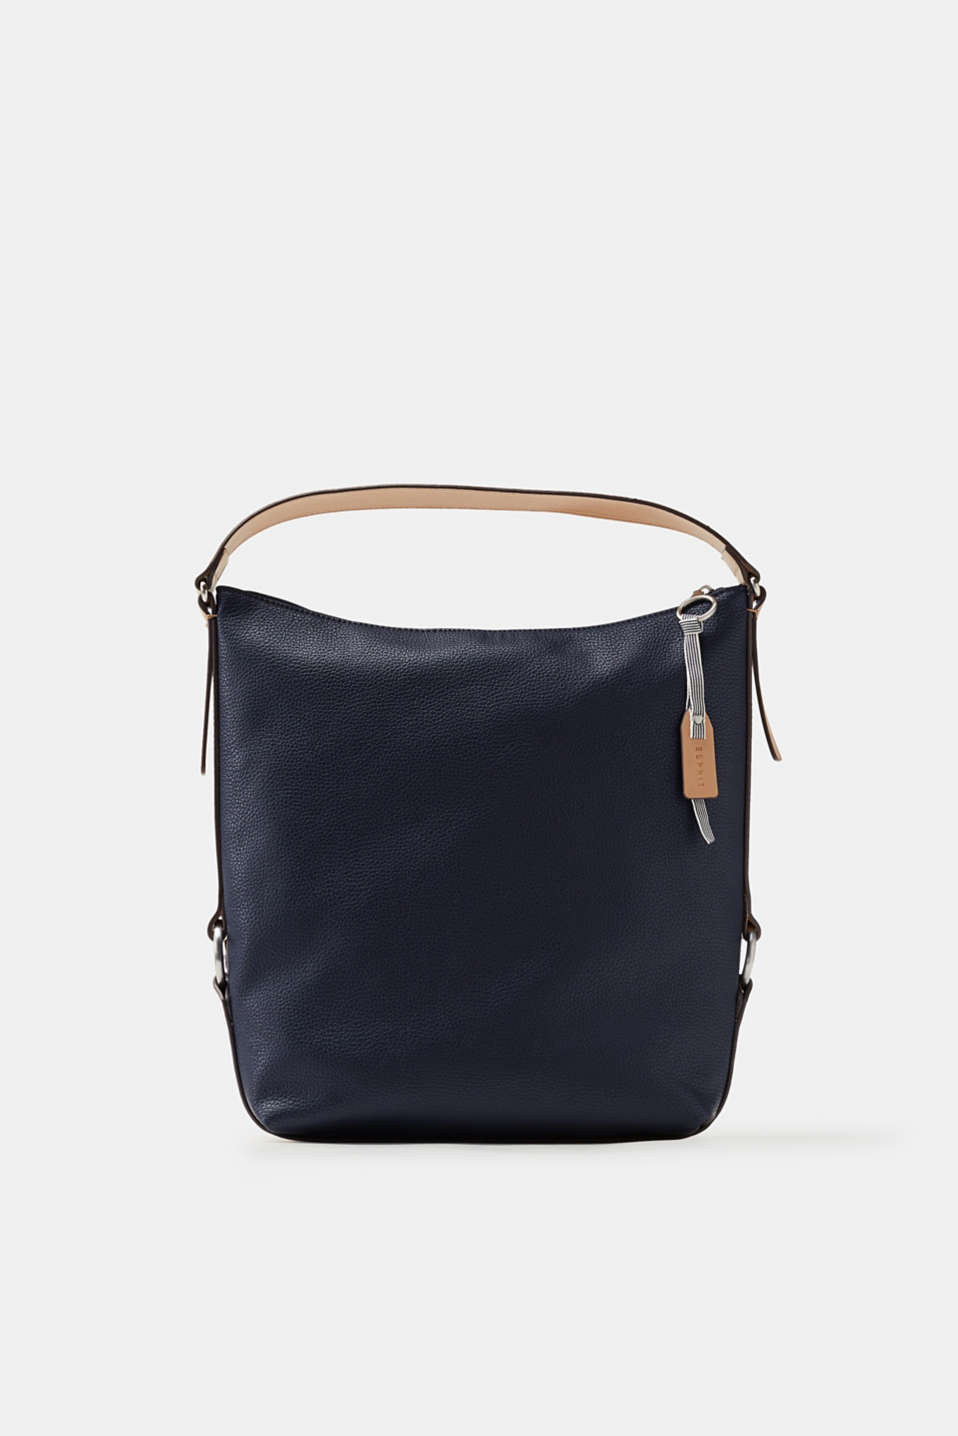 Esprit - Zeitlose Hobo Bag in Leder-Optik